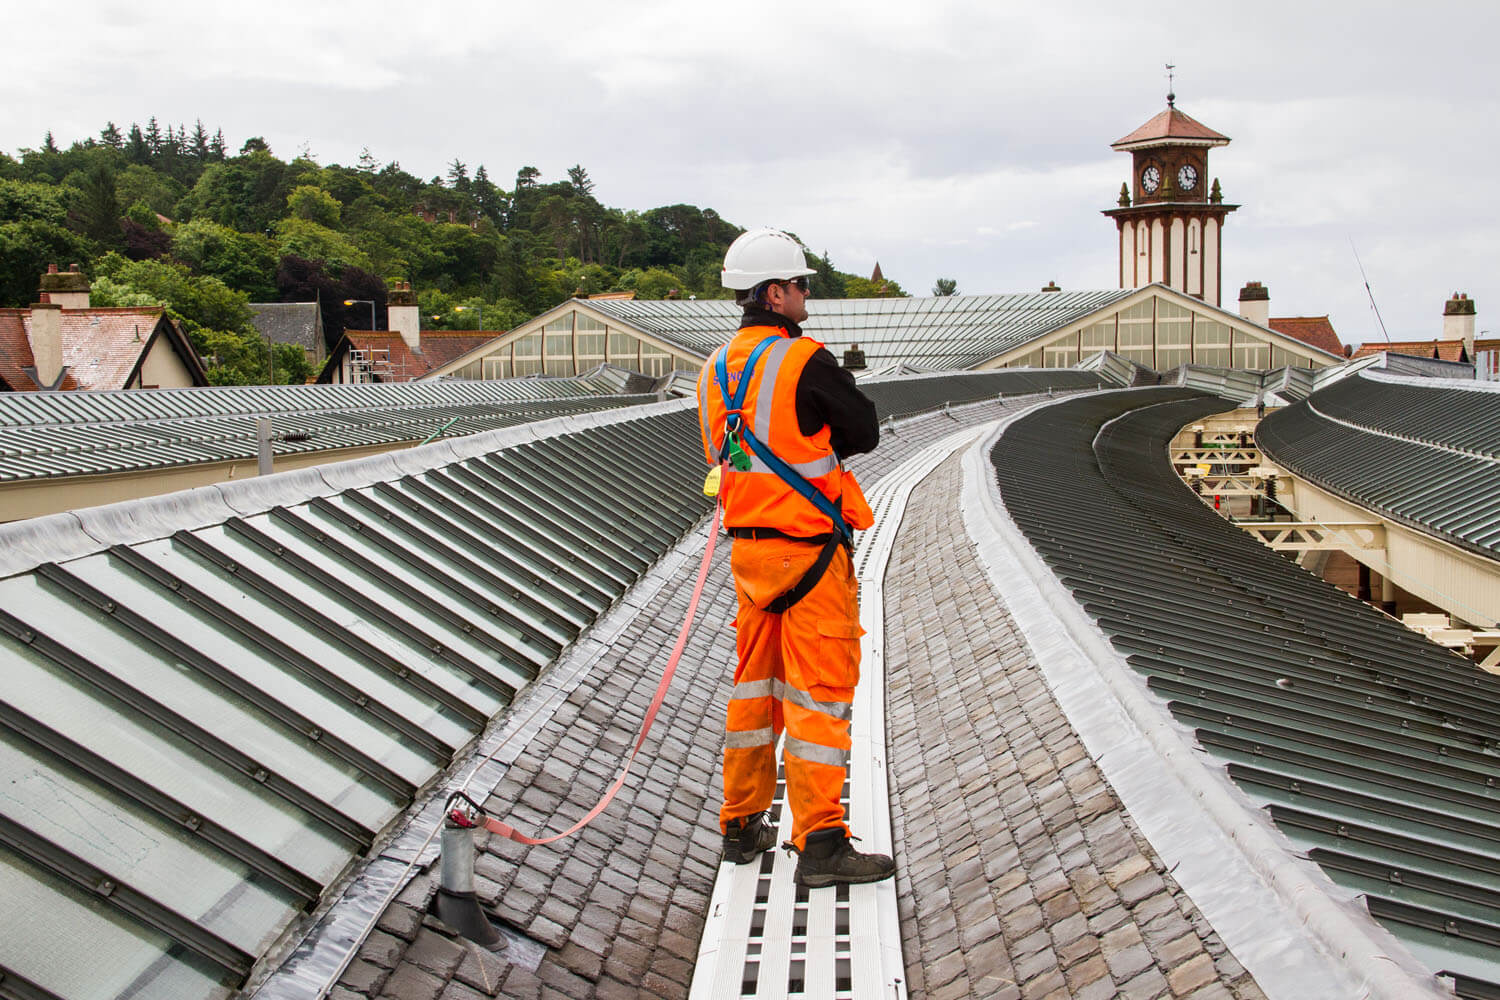 Wemyss Bay Station Roof Access and Spencer Group Employee